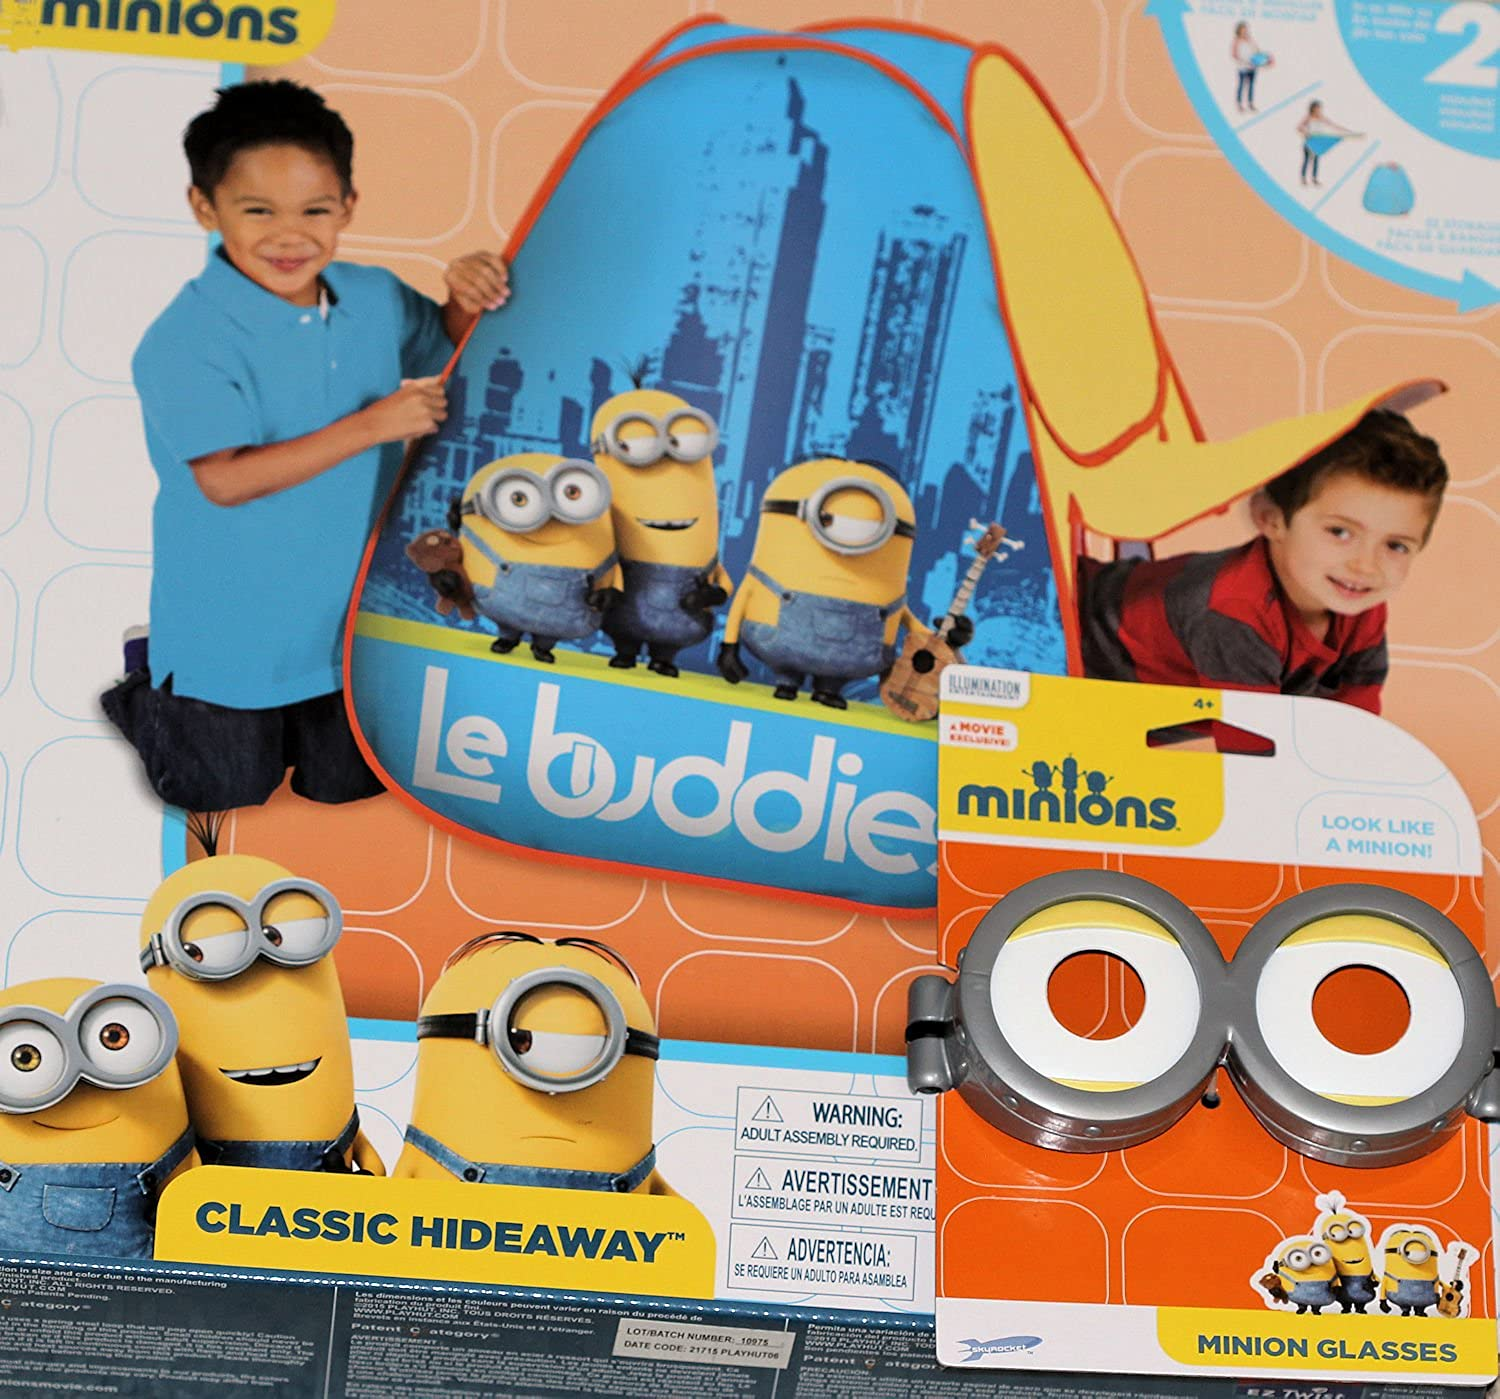 Minions Kids Play Tent by Playhut   Play Teepee Minion Toys   Indoor Tents   Minions Glasses Costume   2 Item Bundle